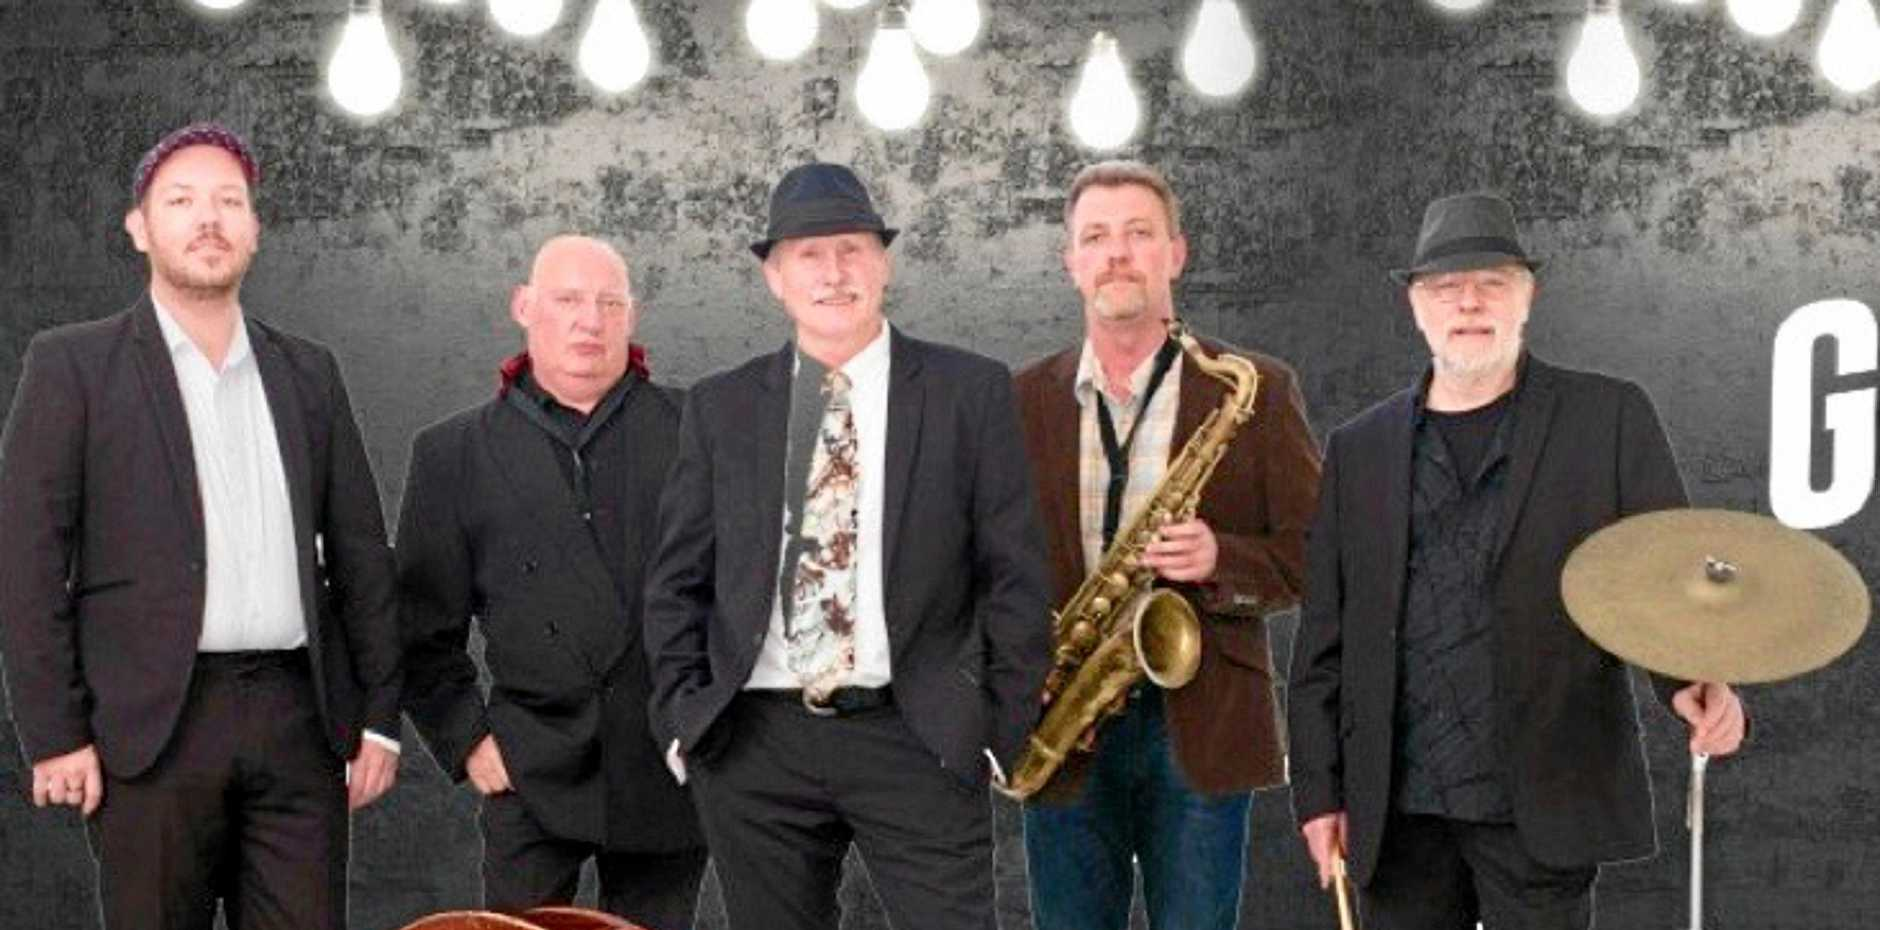 READY TO JIVE: Galapagos Duck will be performing for the jazz community.